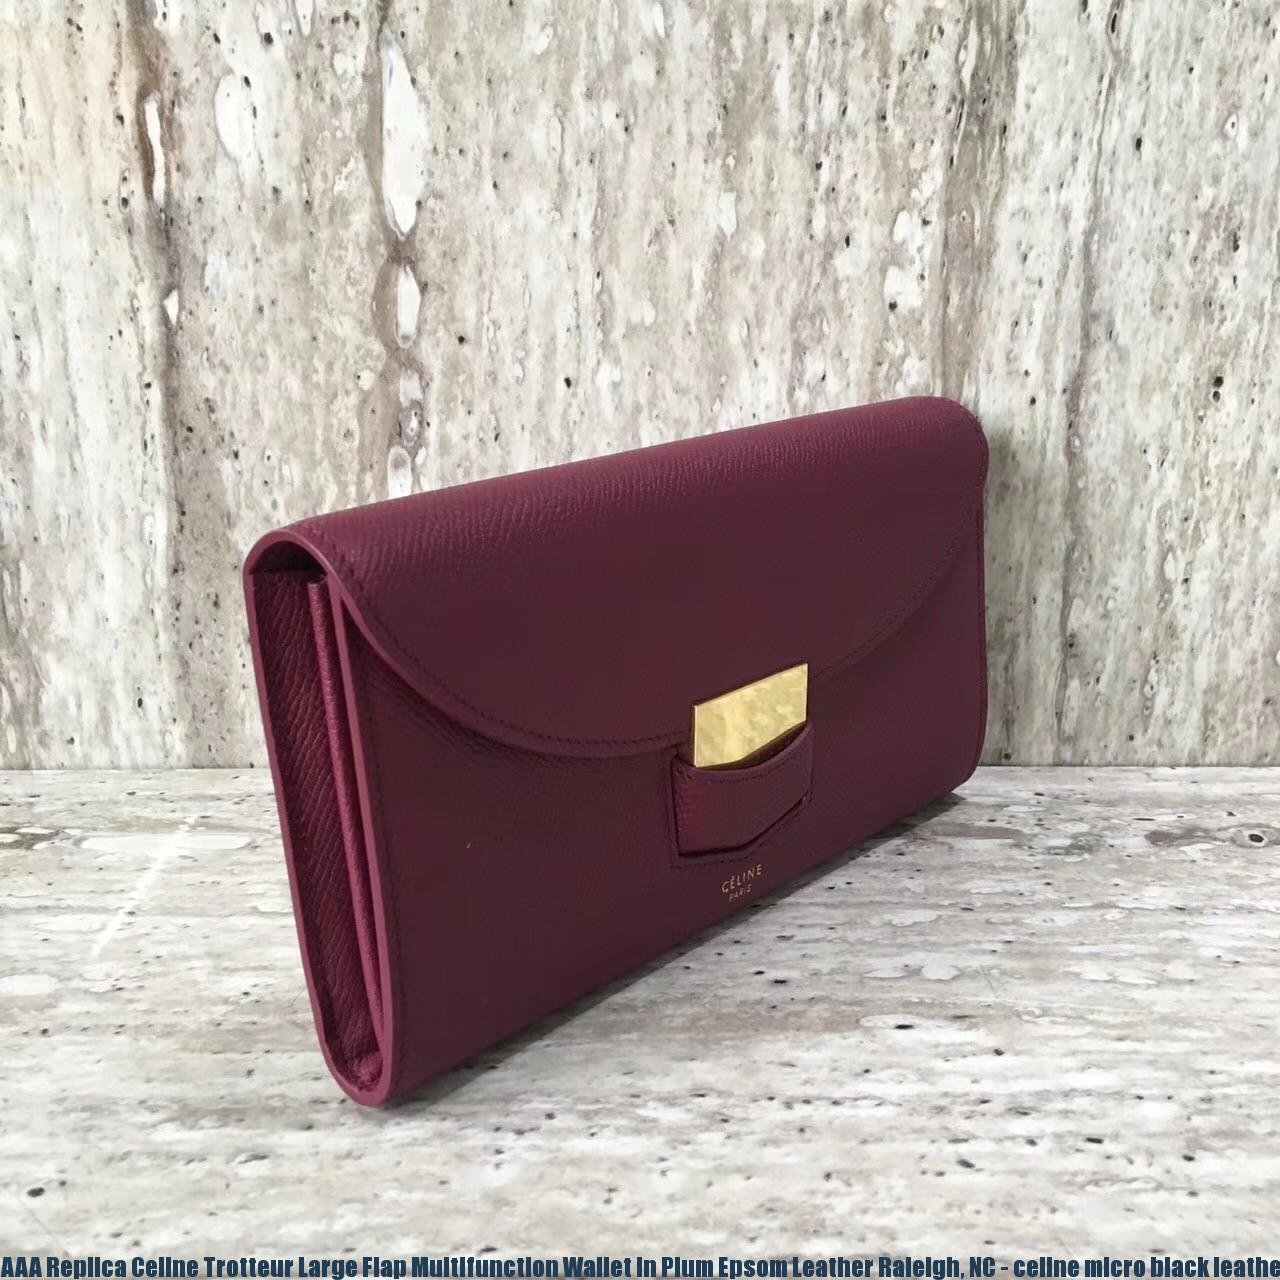 f36e1a8b6dce Celine Wallet Replica | Stanford Center for Opportunity Policy in ...